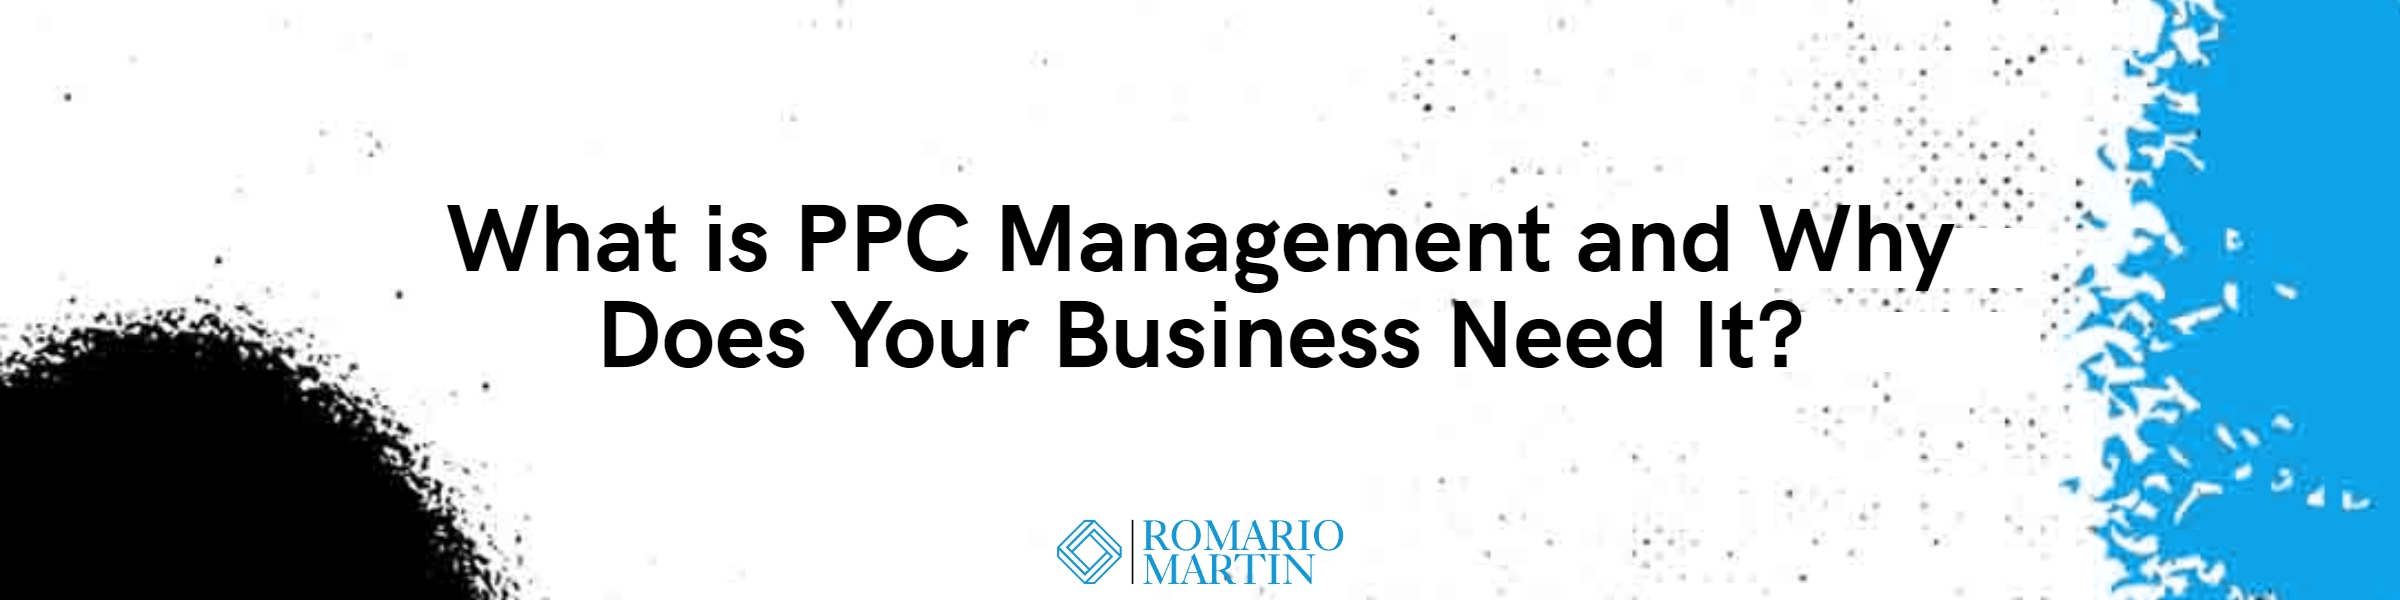 What is PPC Management and Why Does Your Business Need It?